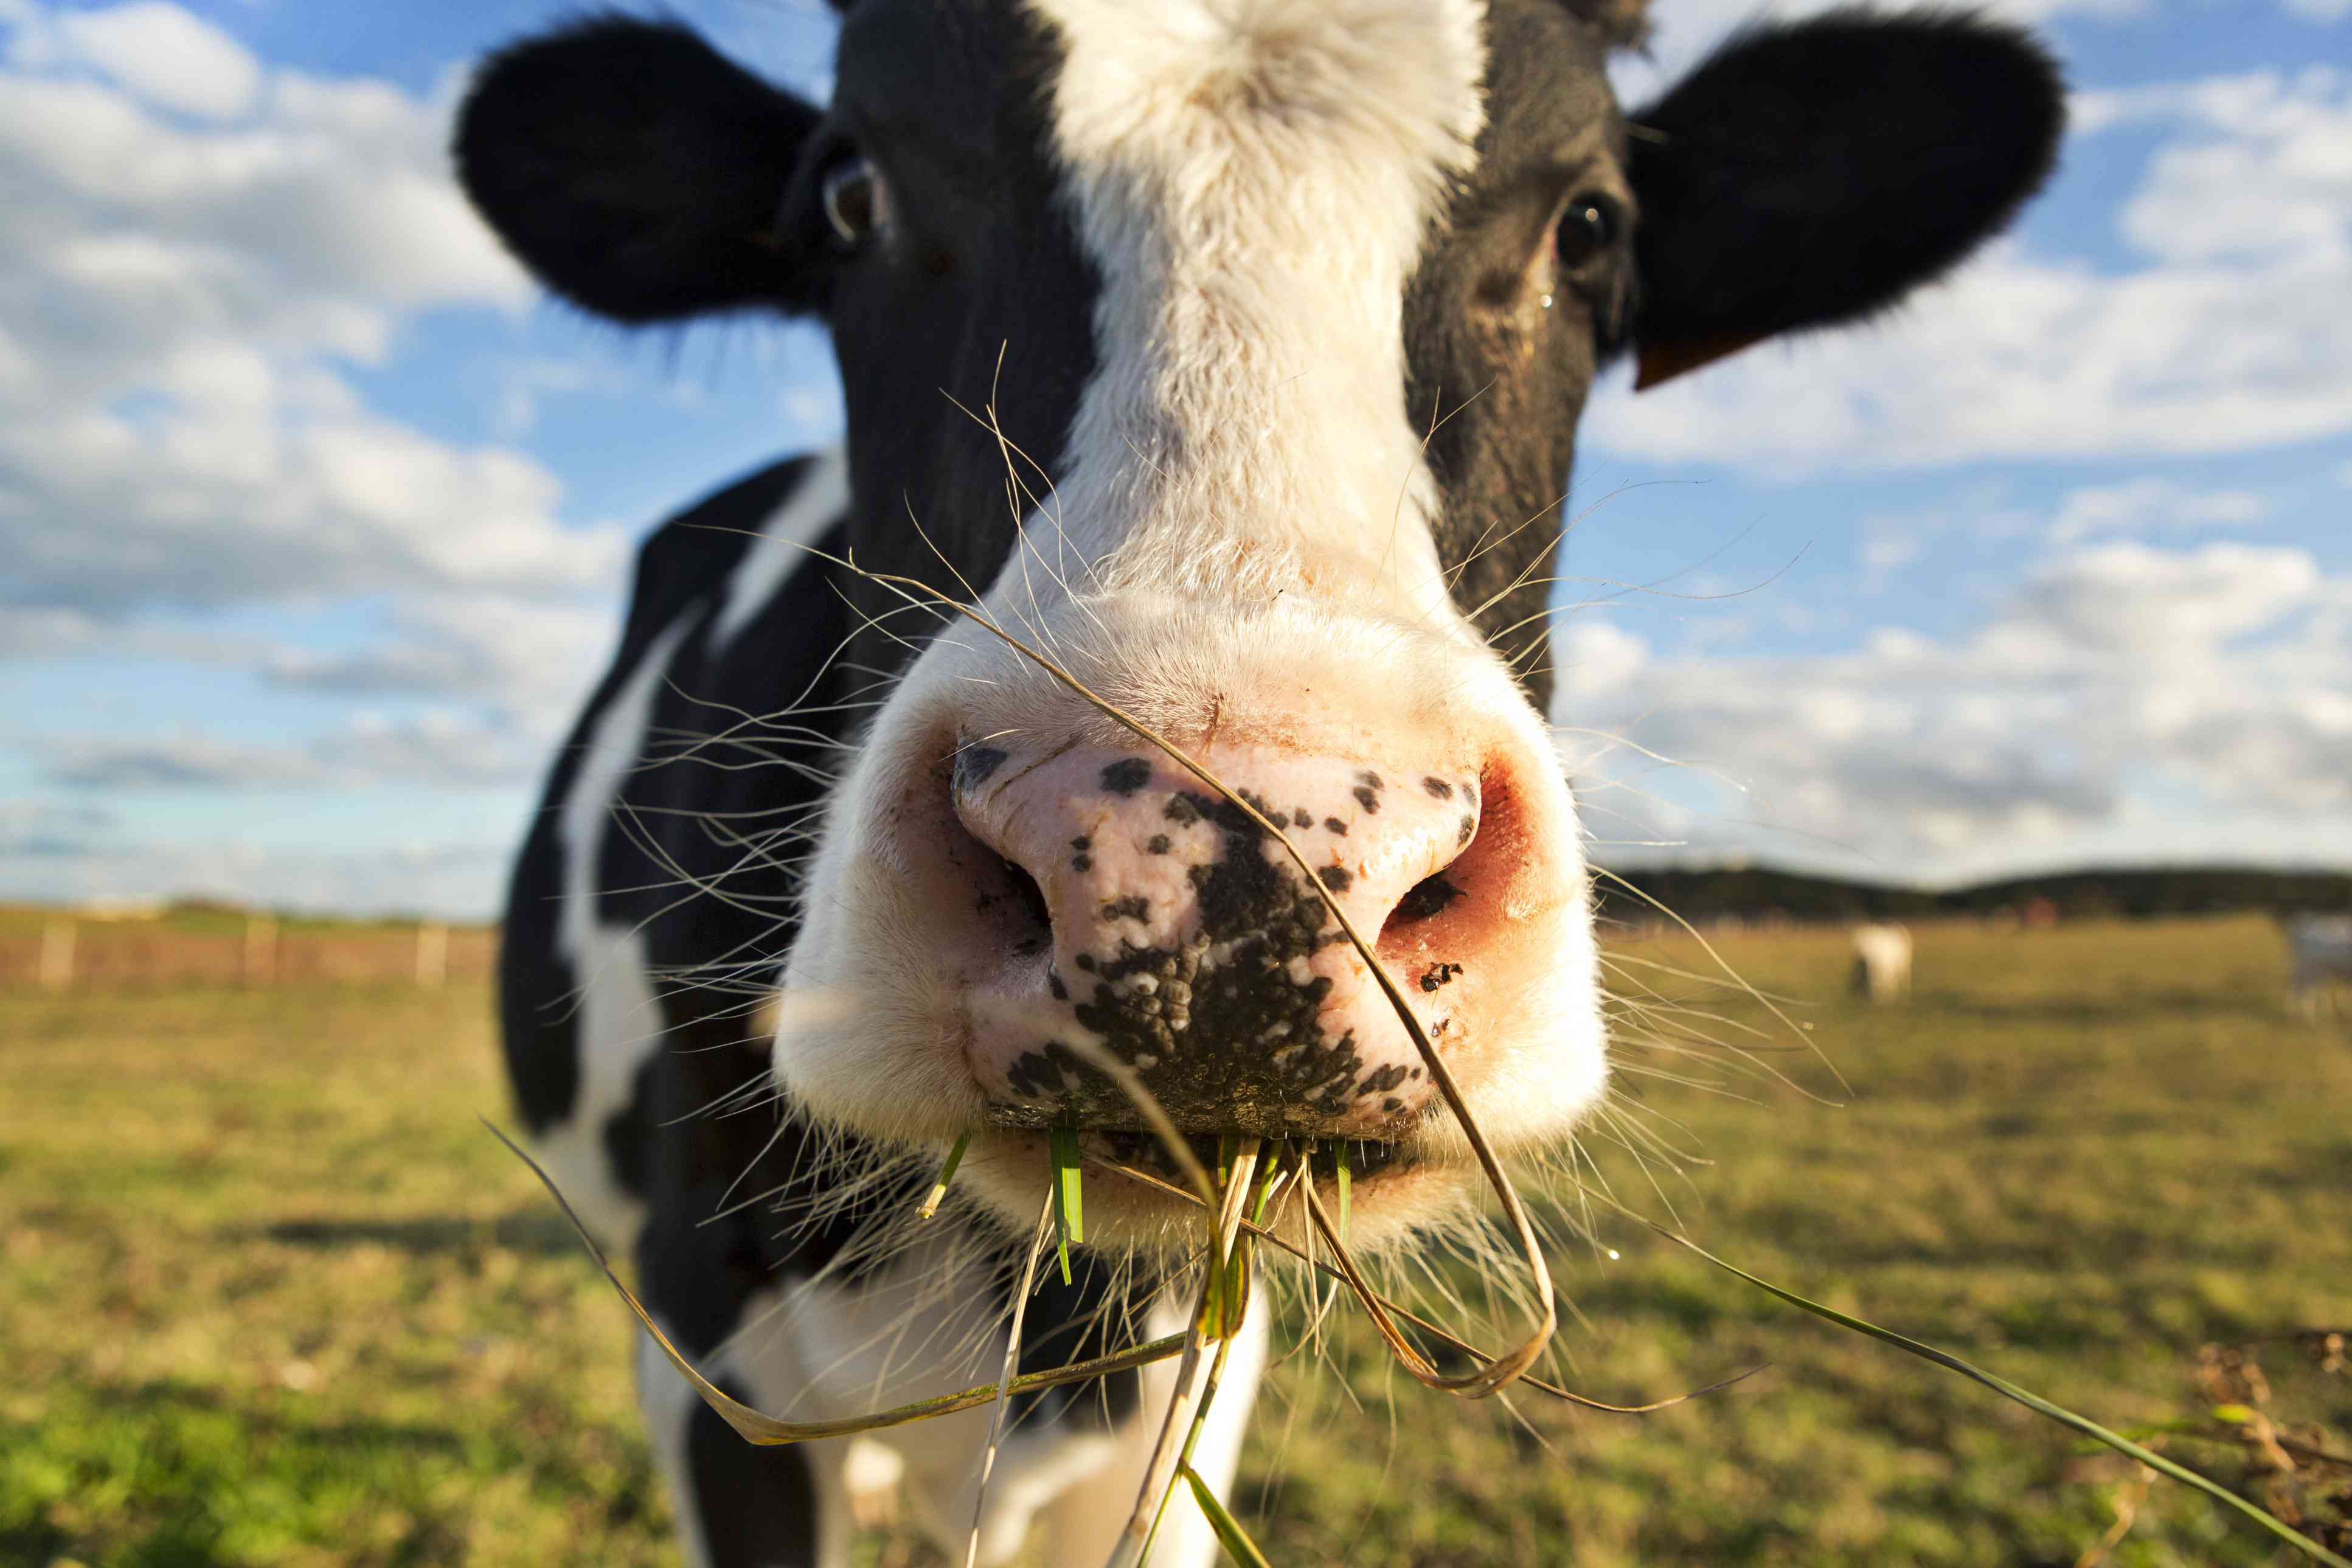 Close-up of a cow in a field